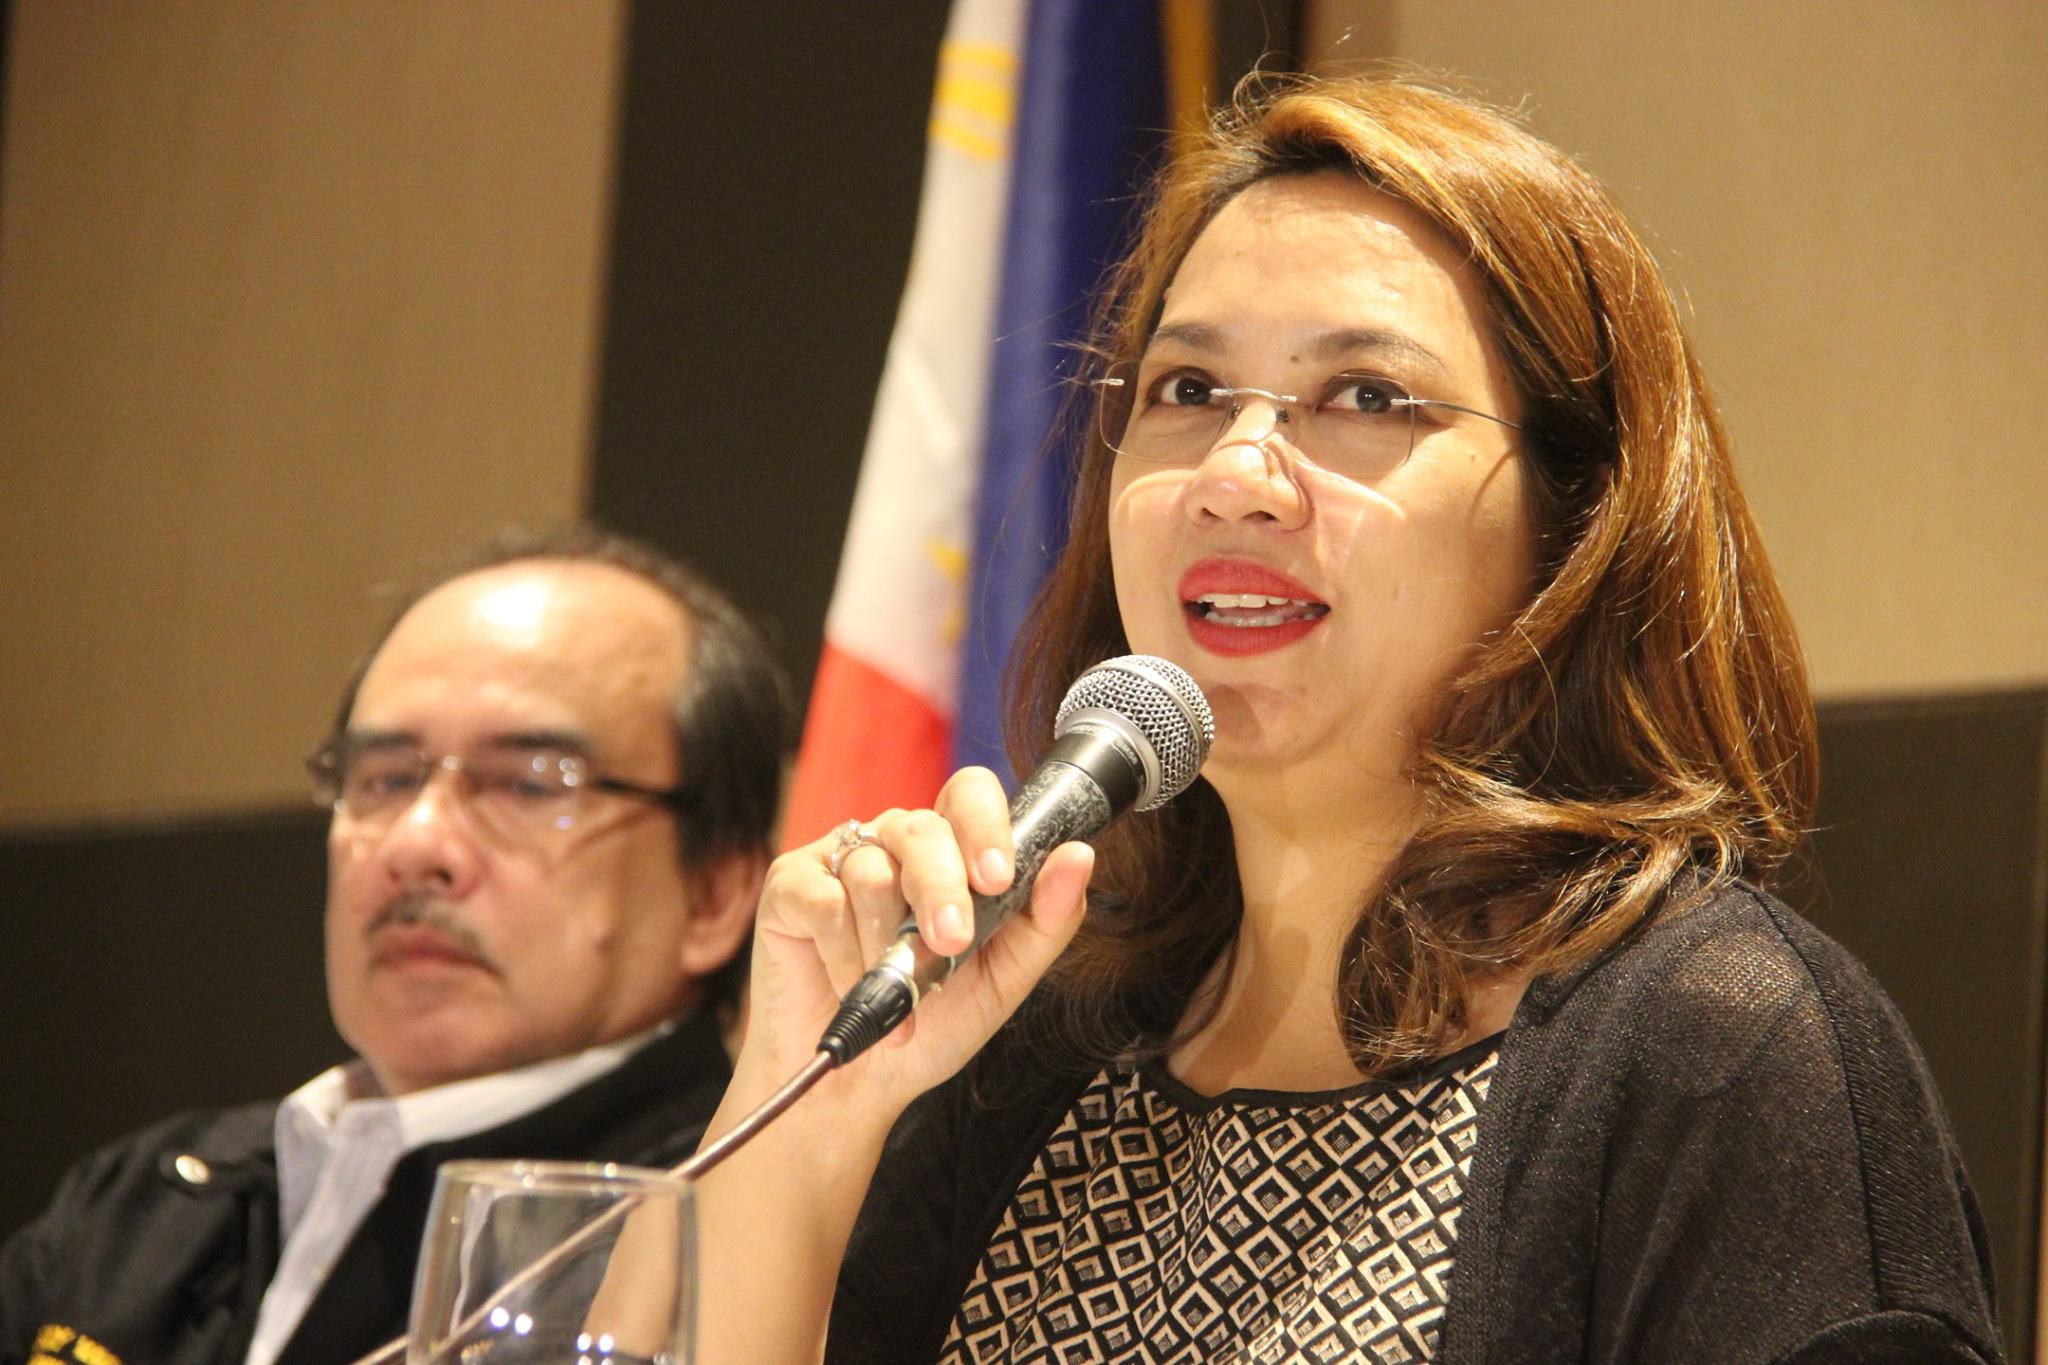 """Our success in TB detection and cure is not just the accomplishment of the DOH. This achievement will not be possible without the cooperation and active support of local government units, medical practitioners in the private sector, our academe, civil society groups, patients' groups, and multilateral agencies, such as the WHO and USAID,"" DOH Secretary Janette L. Garin said. (Photo: DOH's official Facebook page)"